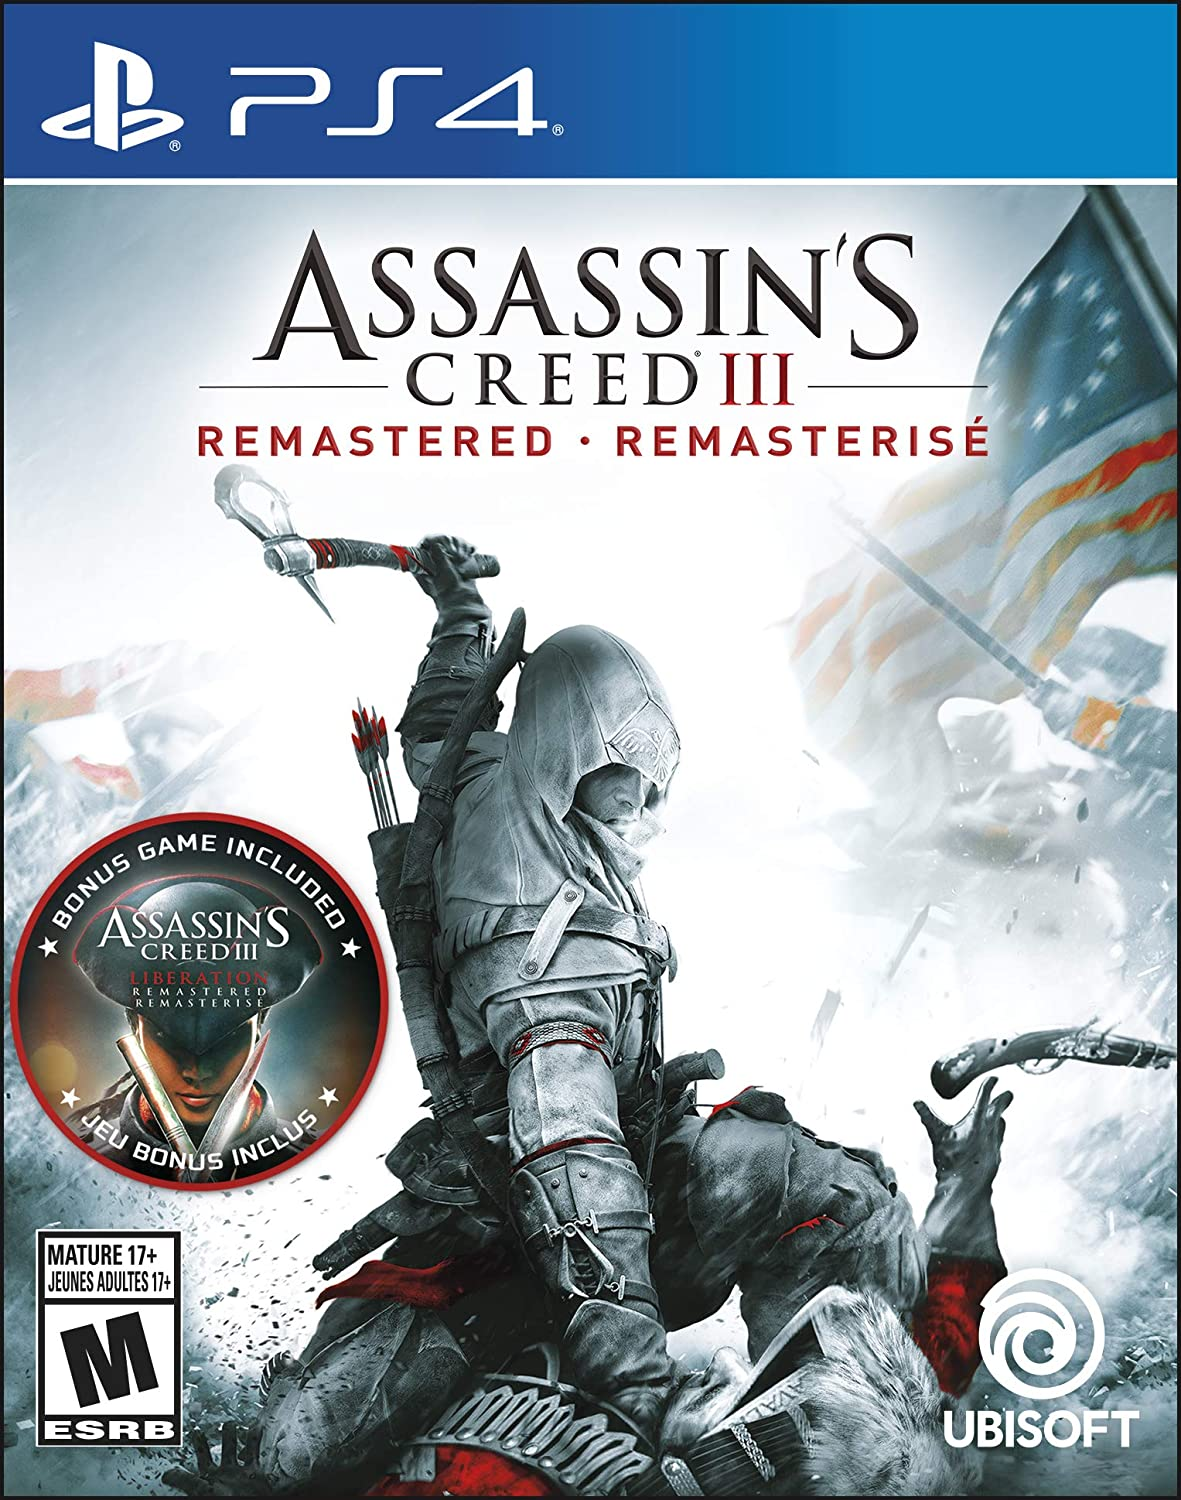 Assassin's Creed III Remastered - PS4    Ubisoft Montréal